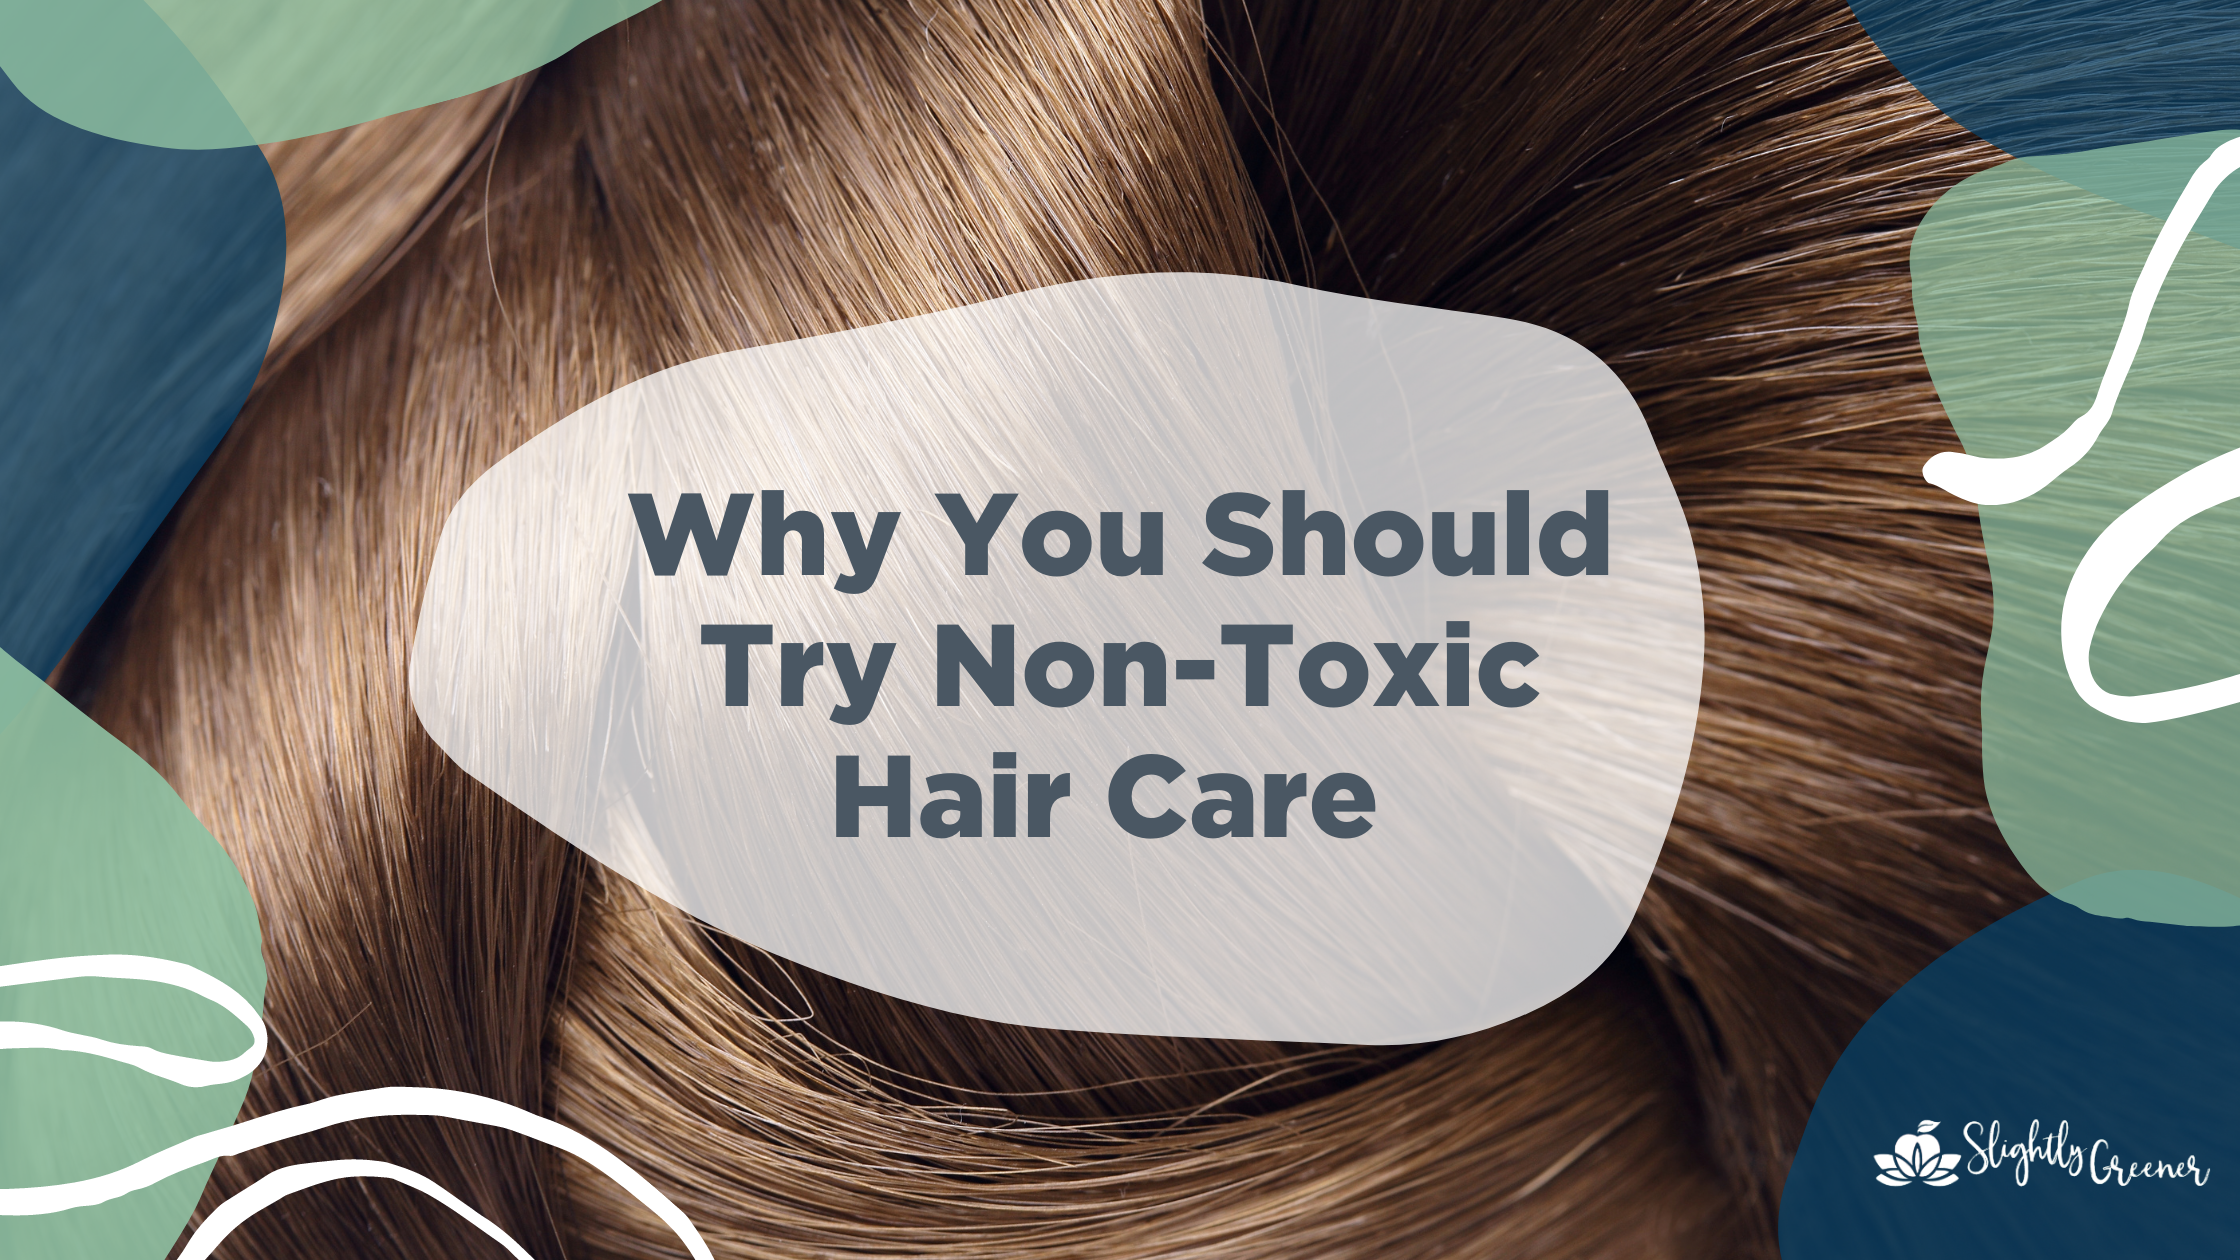 Why You Should Try Non-Toxic Hair Care